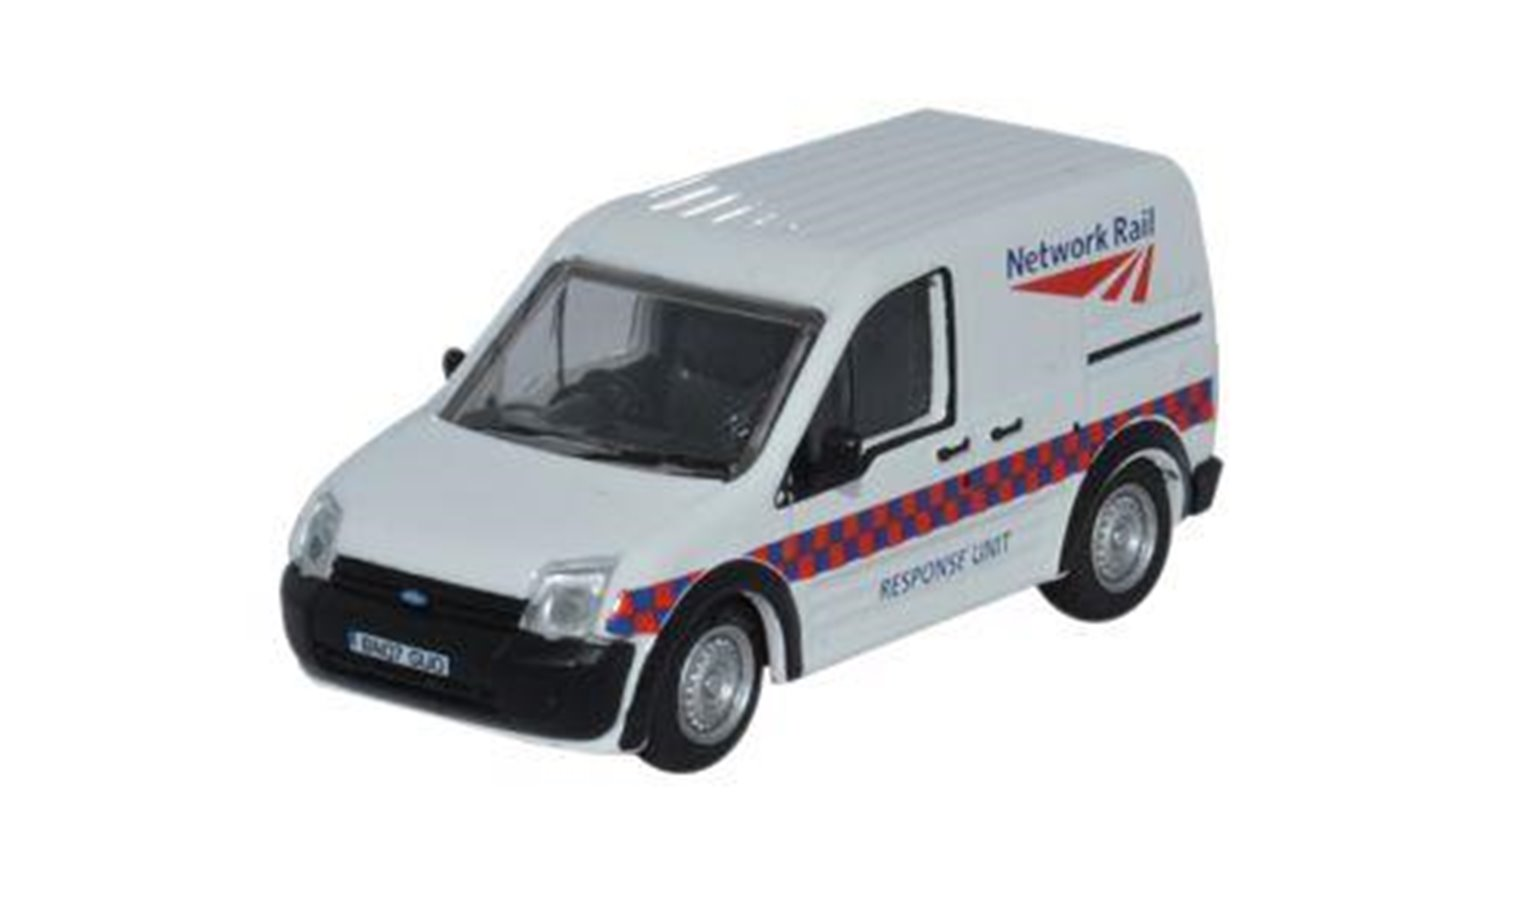 Oxford Diecast 76FTC002 Ford Transit Connect Network Rail